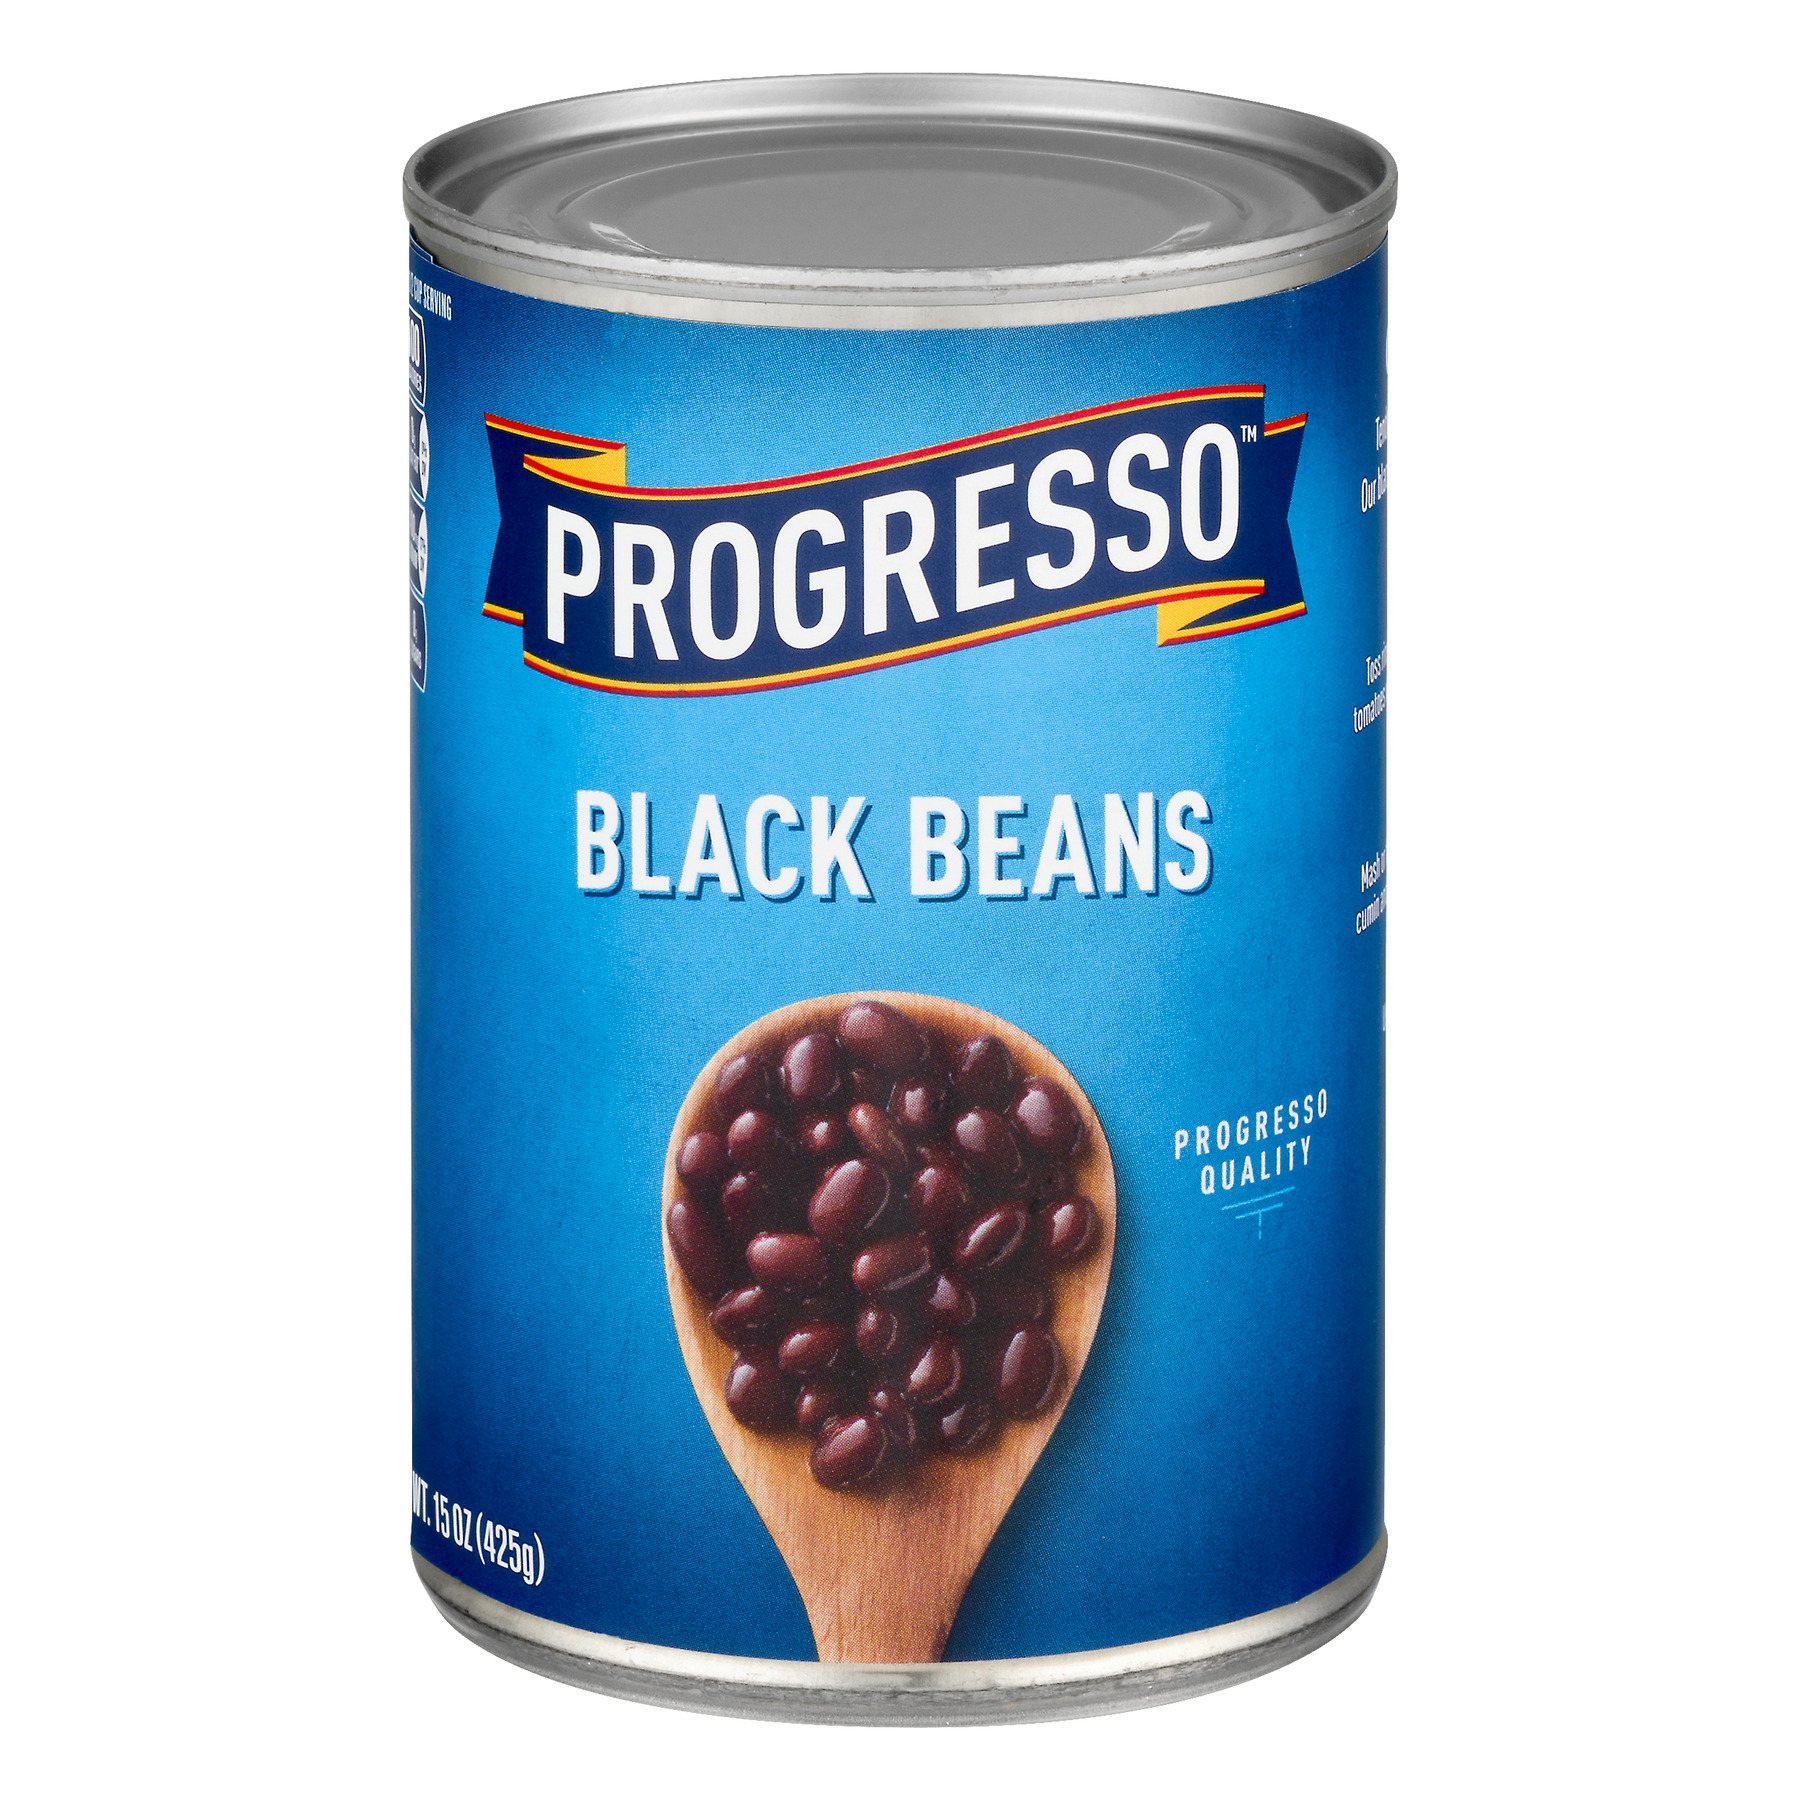 Progresso Black Beans, 15 oz Cans, 15.0 OZ